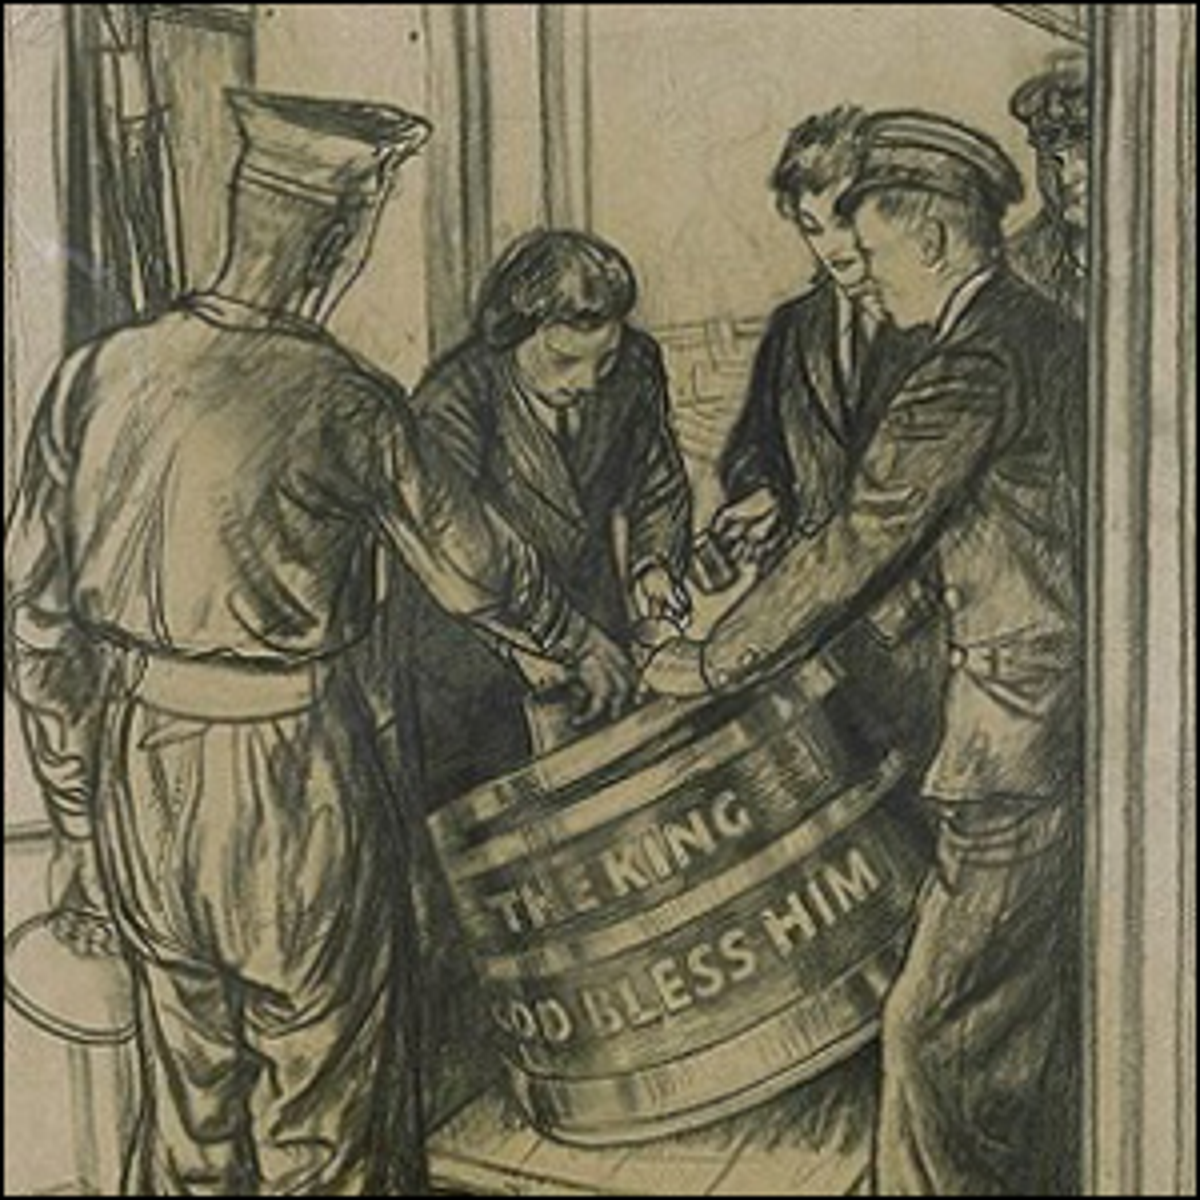 Illustration of Wrens during World War II serving rum to a sailor from a tub.